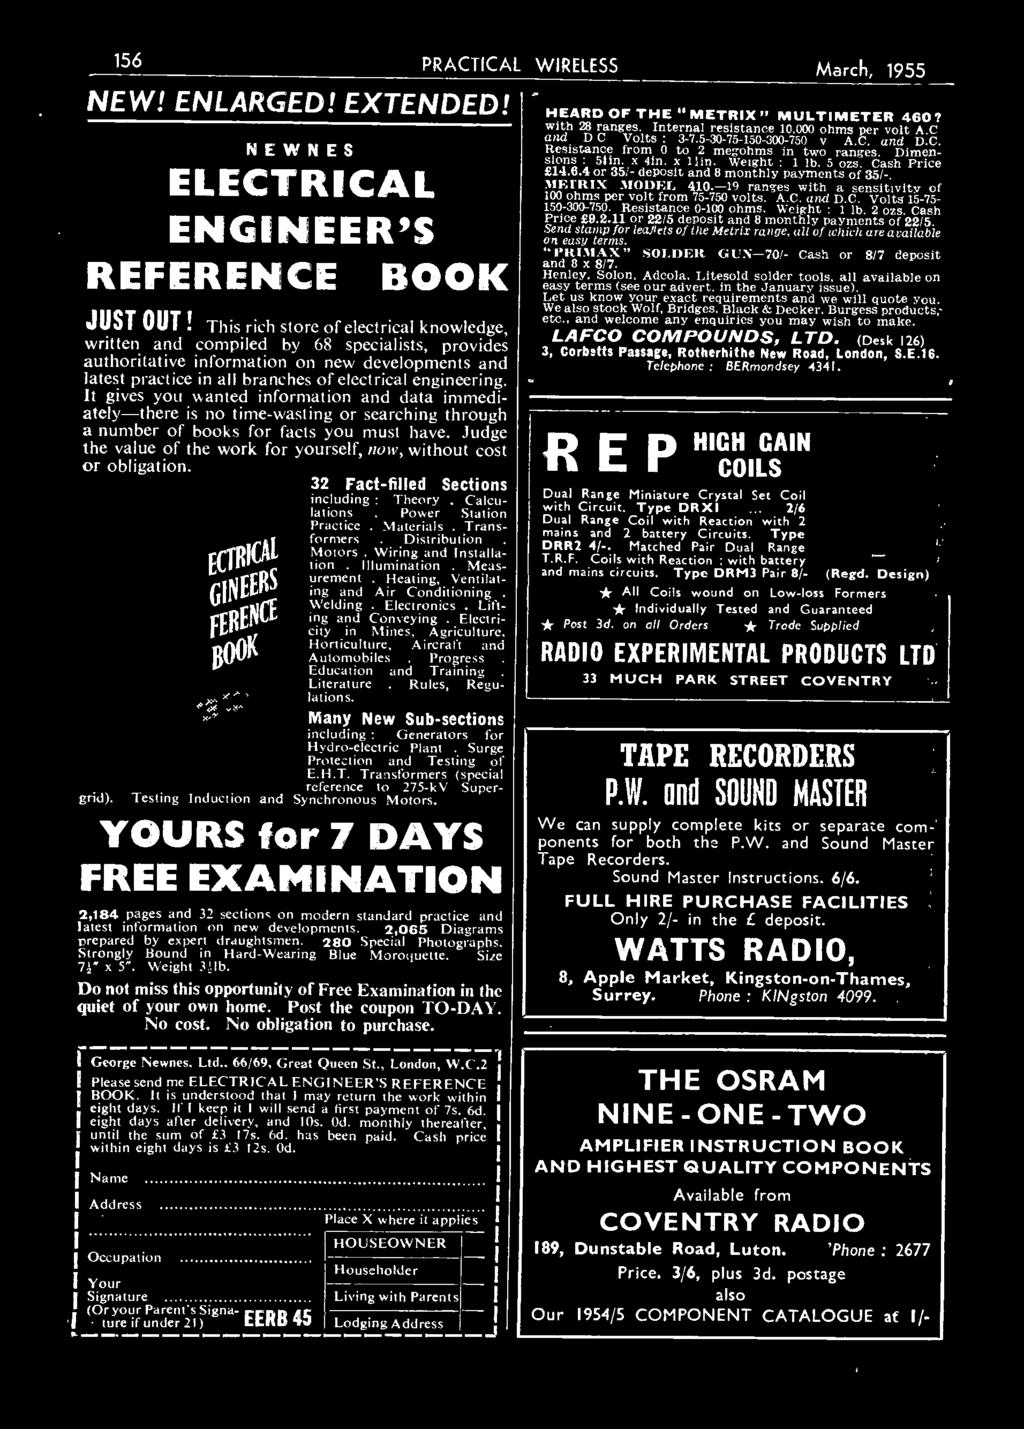 The Beginners Guide To Radio Yla March 1955 Ed1torfjcamm Pdf 12ay7 Ecc82 6l6 Pushpull Circuit Diagram Basiccircuit It Gives You Wanted Information And Data Immediately There Is No Time Wasting Or